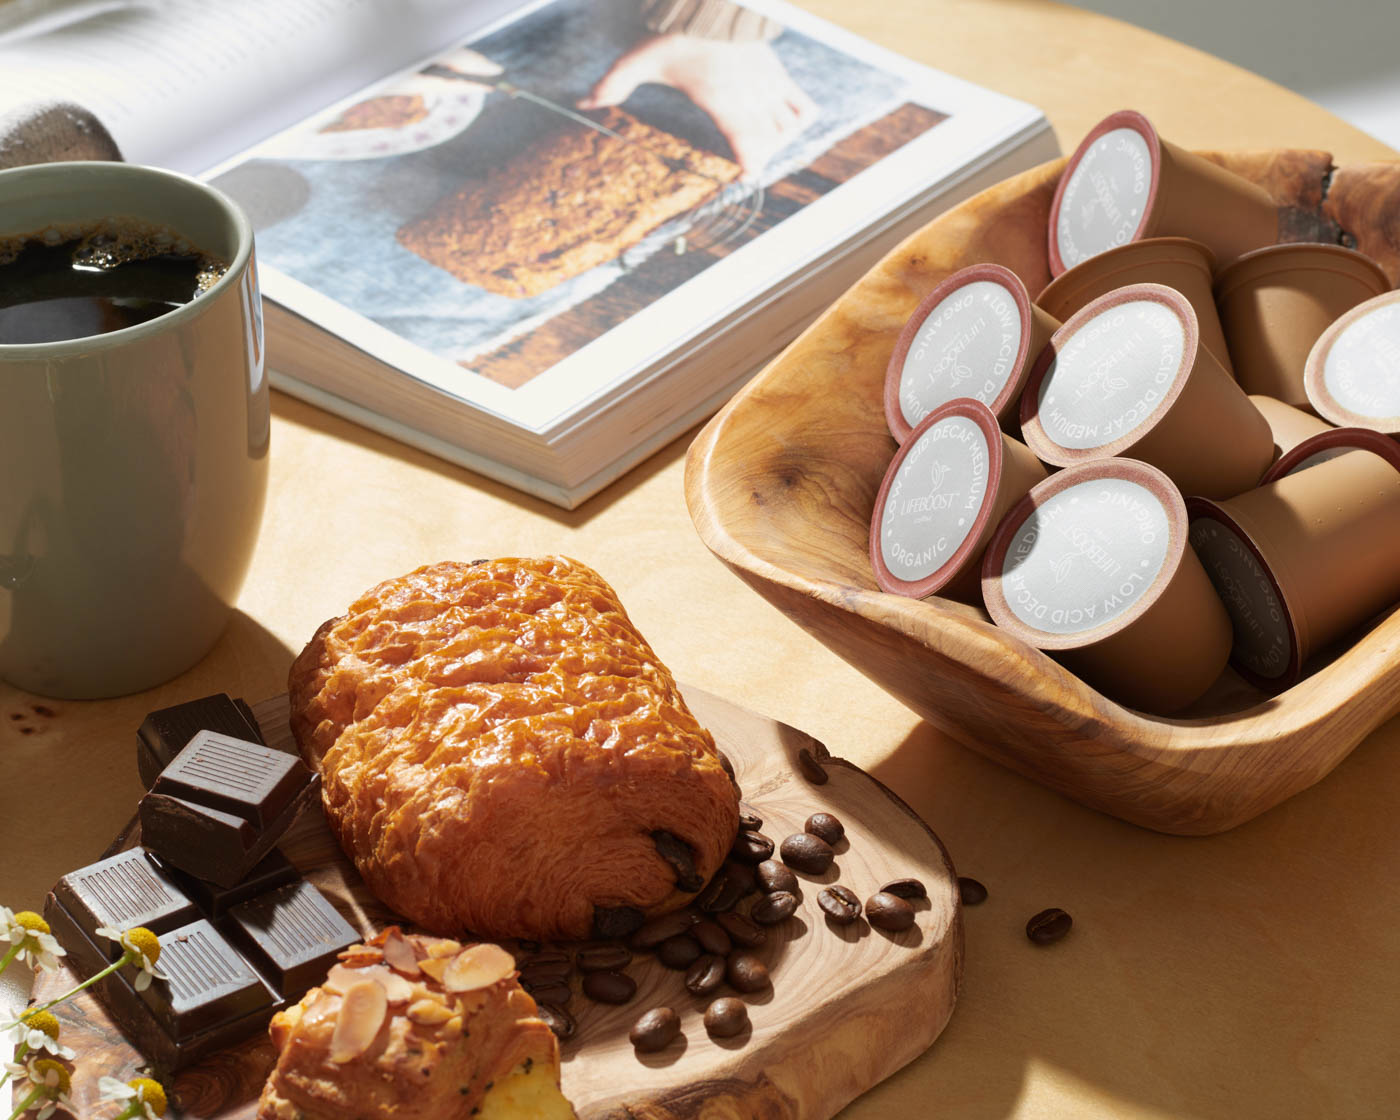 Lifeboost-life-boost-coffee-editorial-style-commercial-photographer-photography-damion-lloyd-product-food-drink-chocolate-croissant-caramel